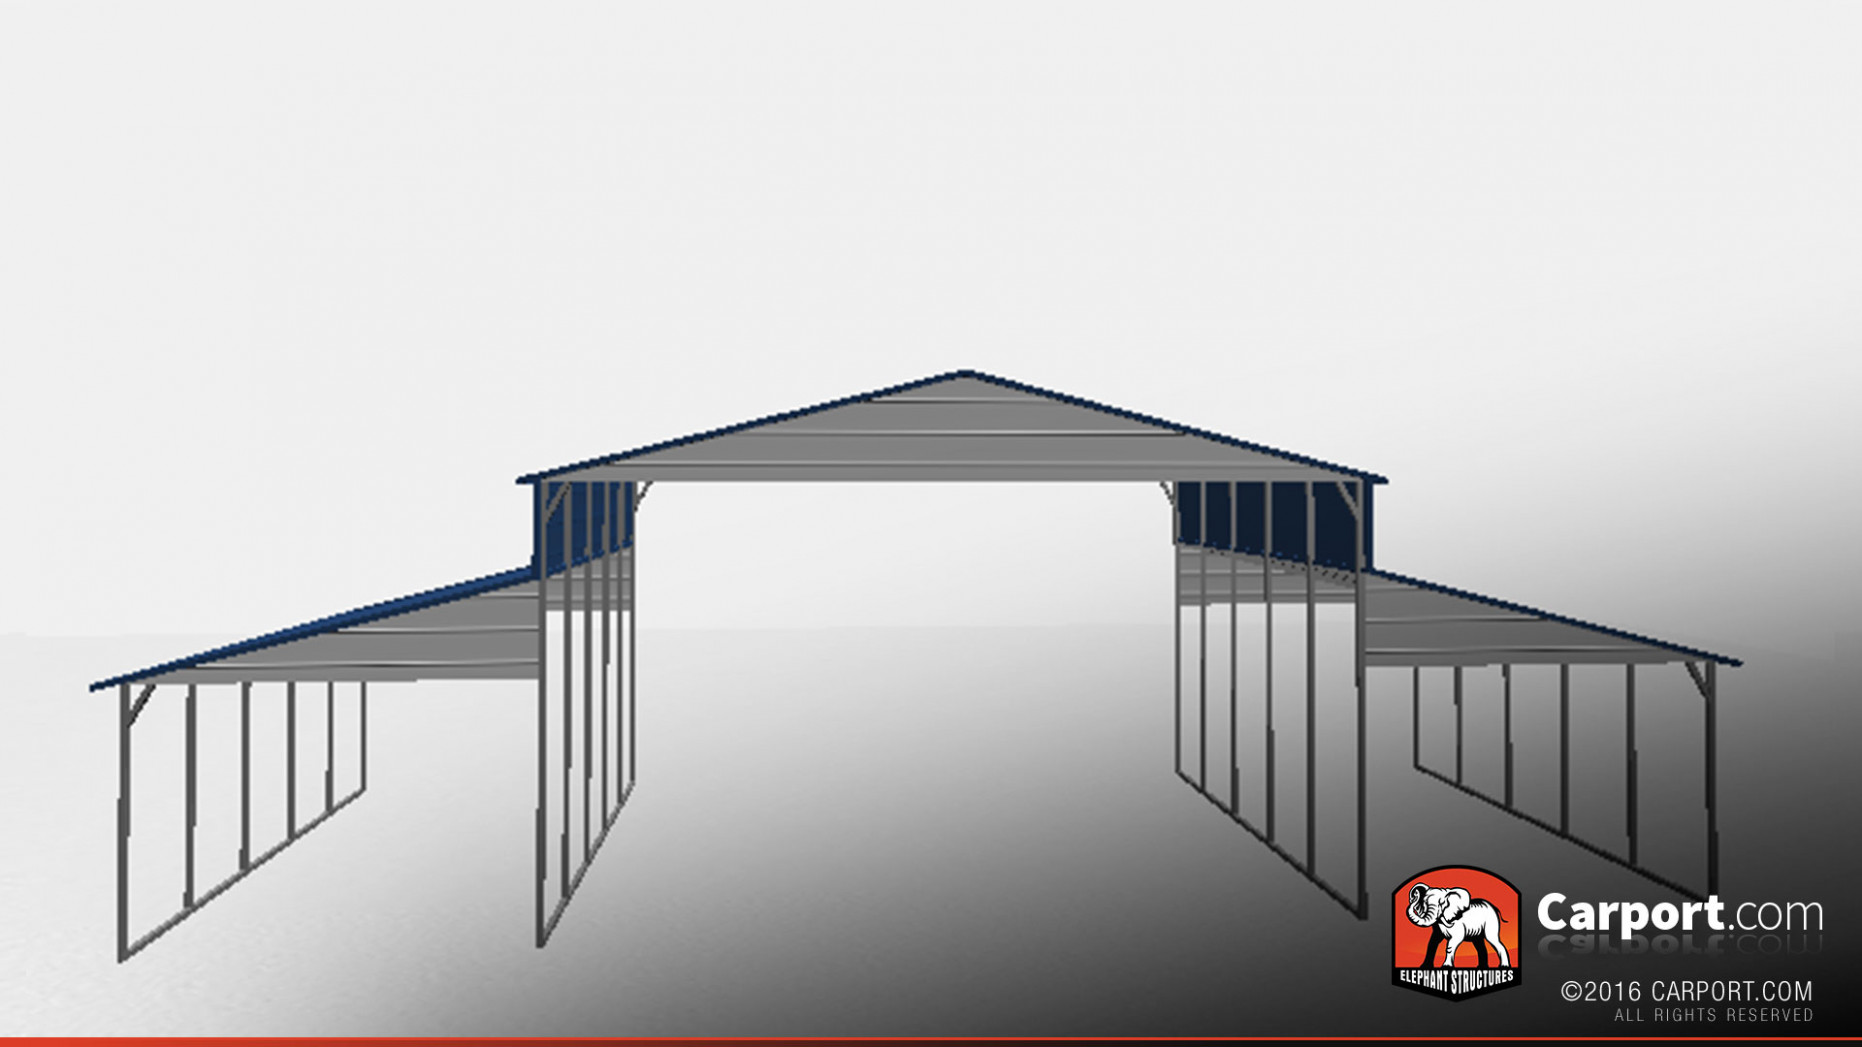 Strong Ridgeline Metal Barn With Open Design Metal Carport Ideas For Front Of House